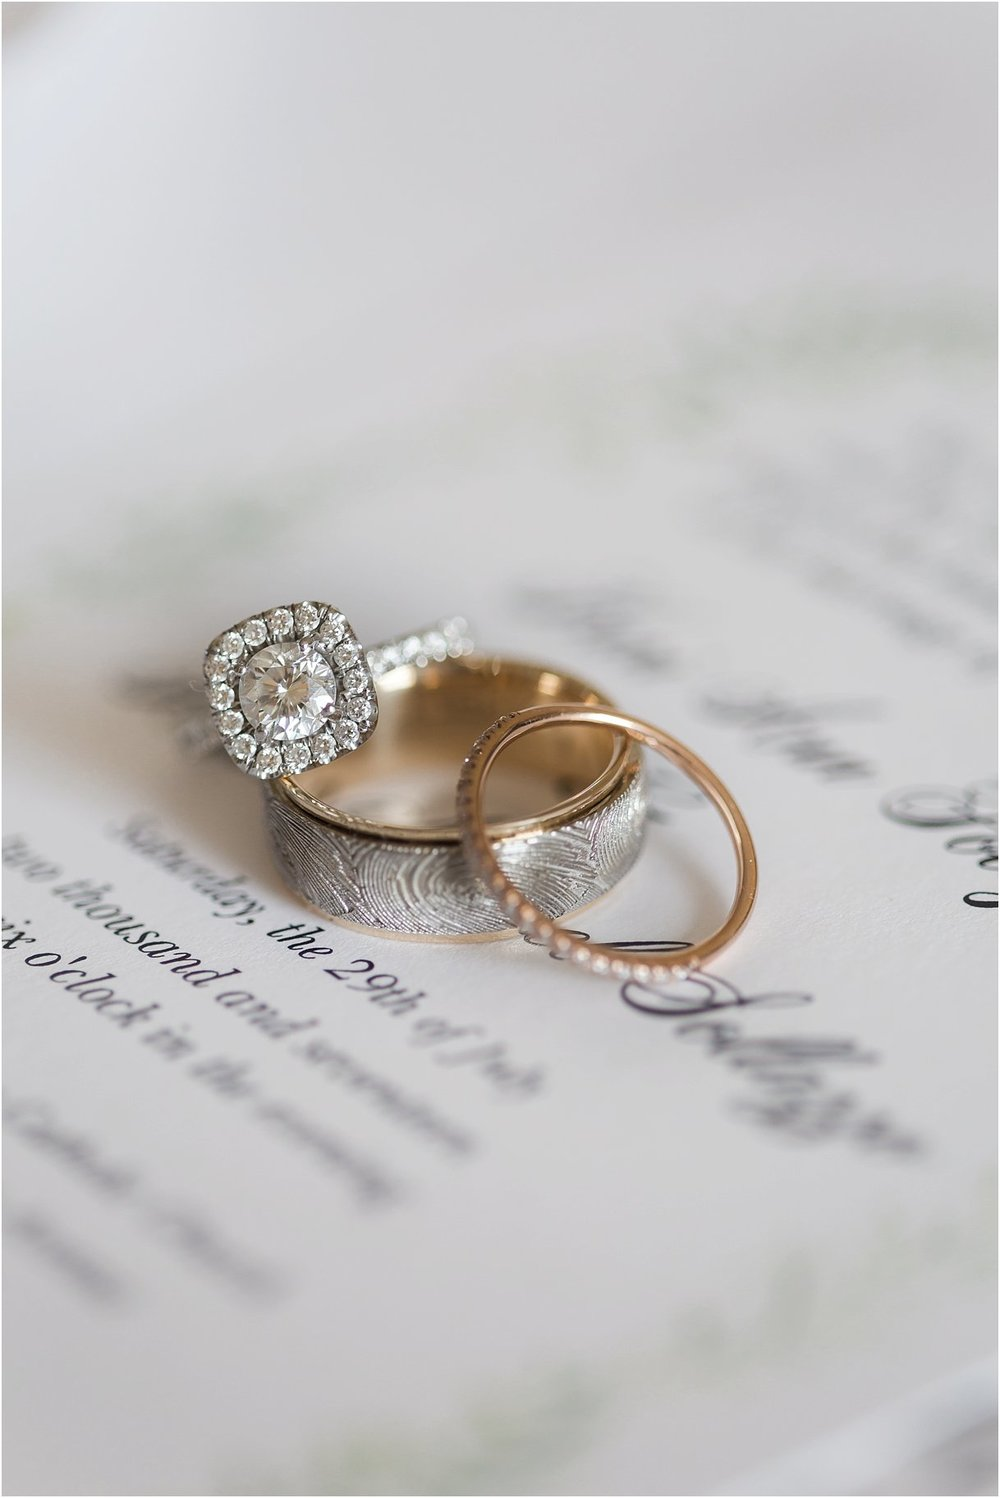 PSJ Photography-Oxford Exchange Wedding - Wedding Rings - Round Halo Cut - Finger print wedding band